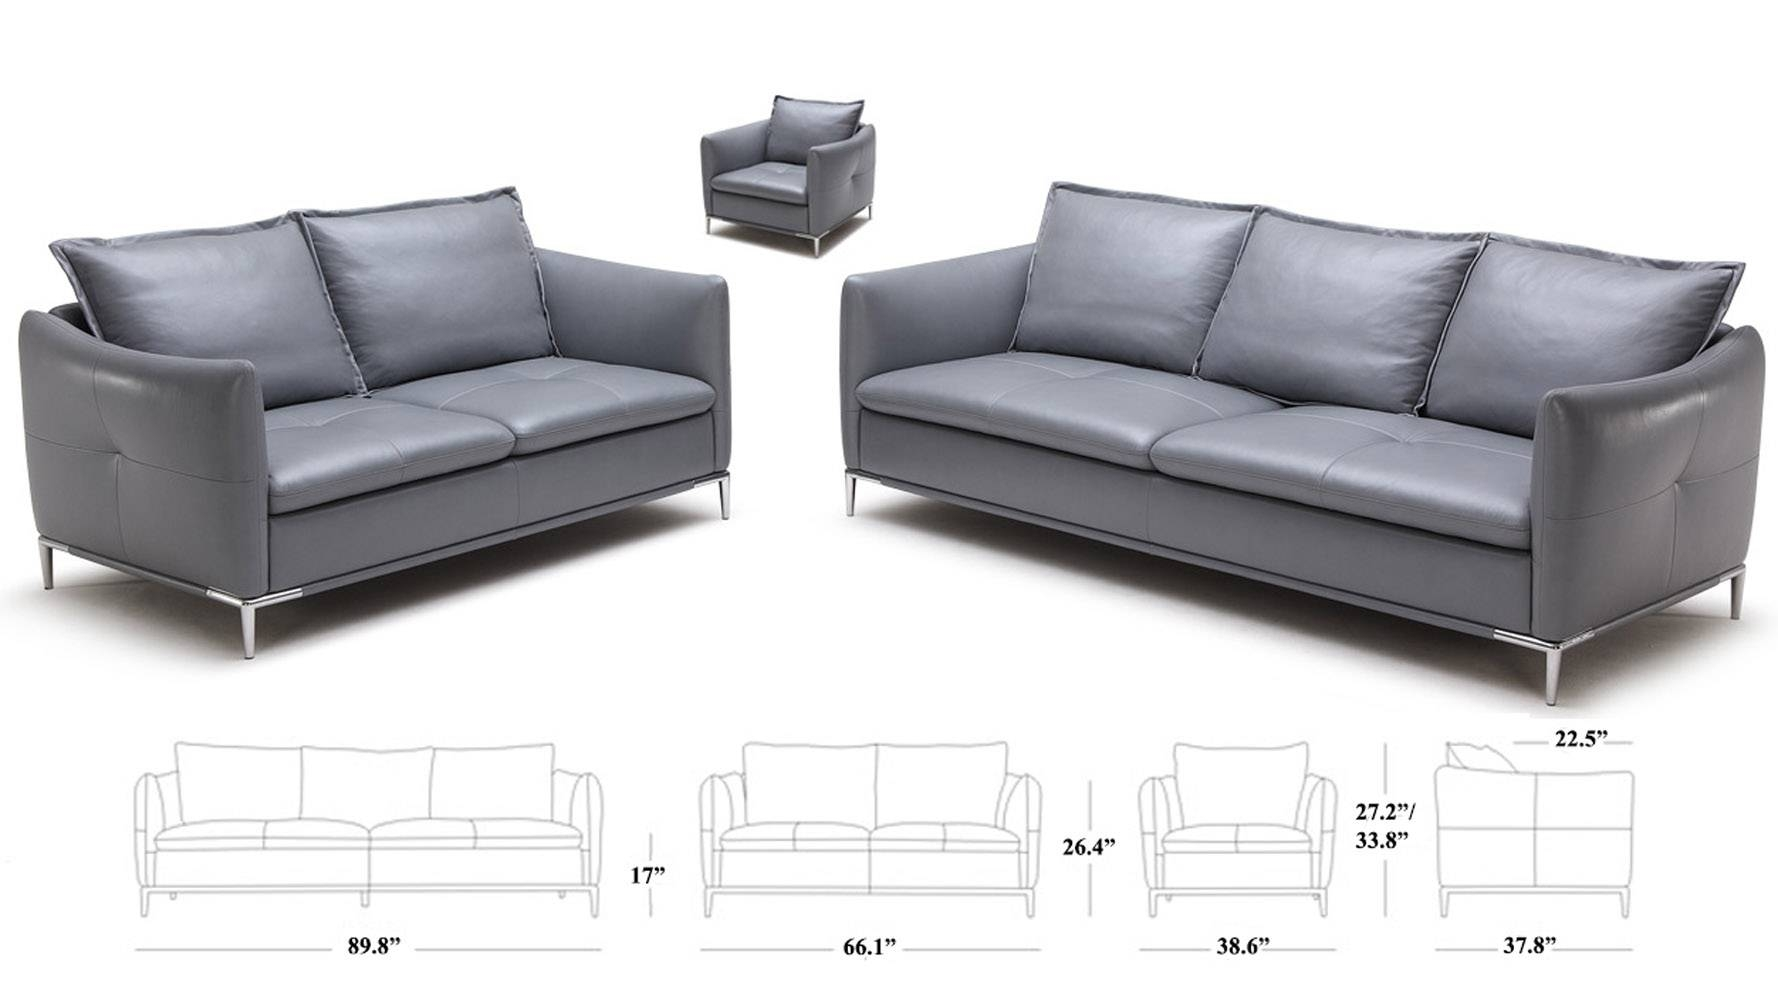 Grey Bristol Leather Sofa Set With Loveseat And Chair | Zuri Furniture within Bristol Sofas (Image 11 of 30)